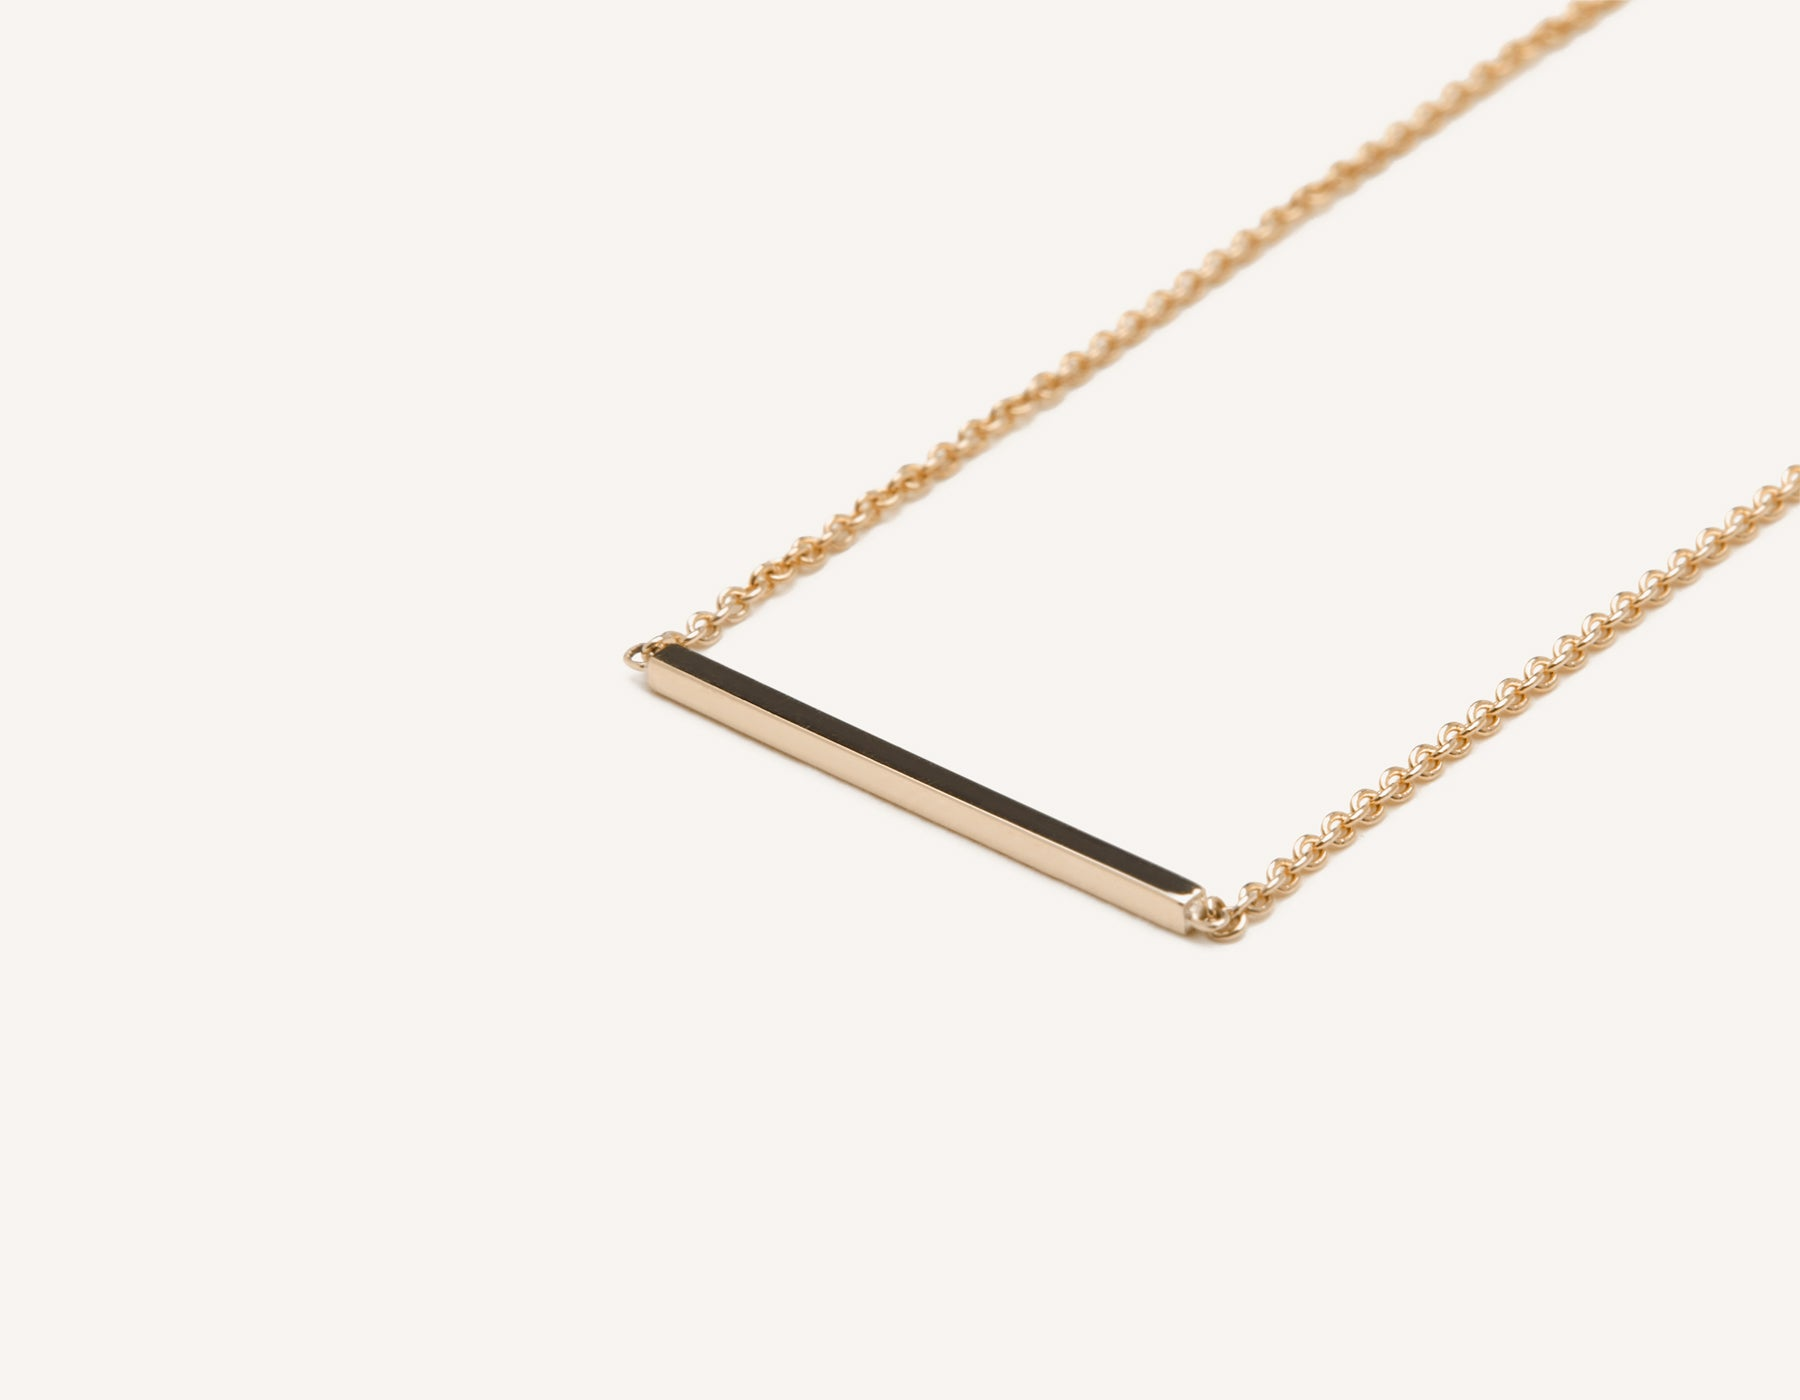 Modern minimalist 14k solid gold Line Necklace dainty chain Vrai and Oro sustainable jewelry, 14K Rose Gold